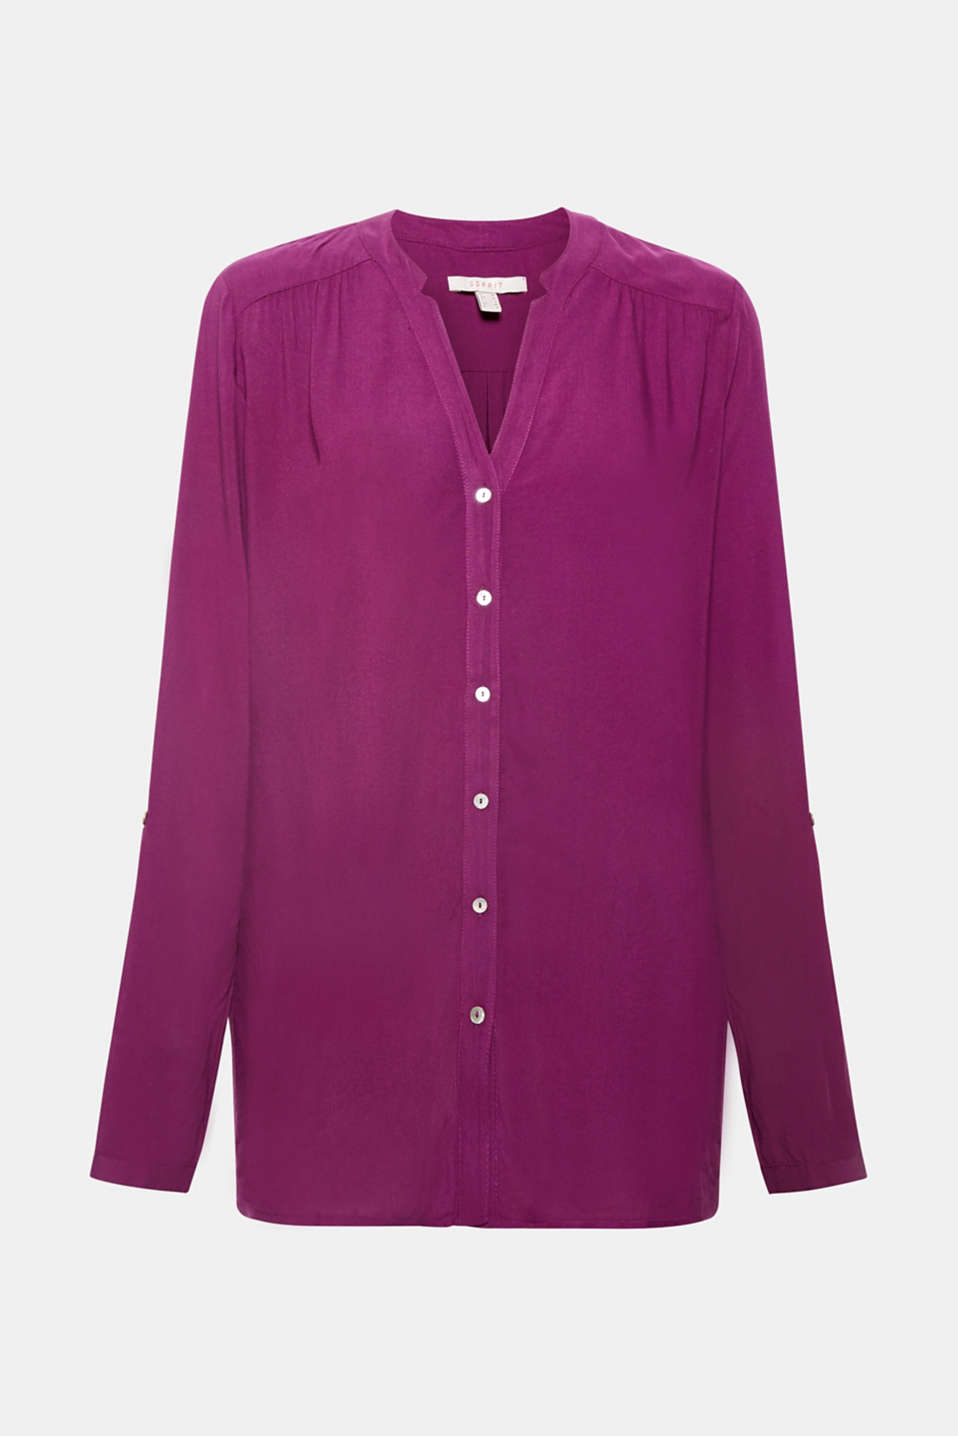 This flowing Henley blouse with adjustable turn-up sleeves and a casual cut is a great piece for many different occasions!